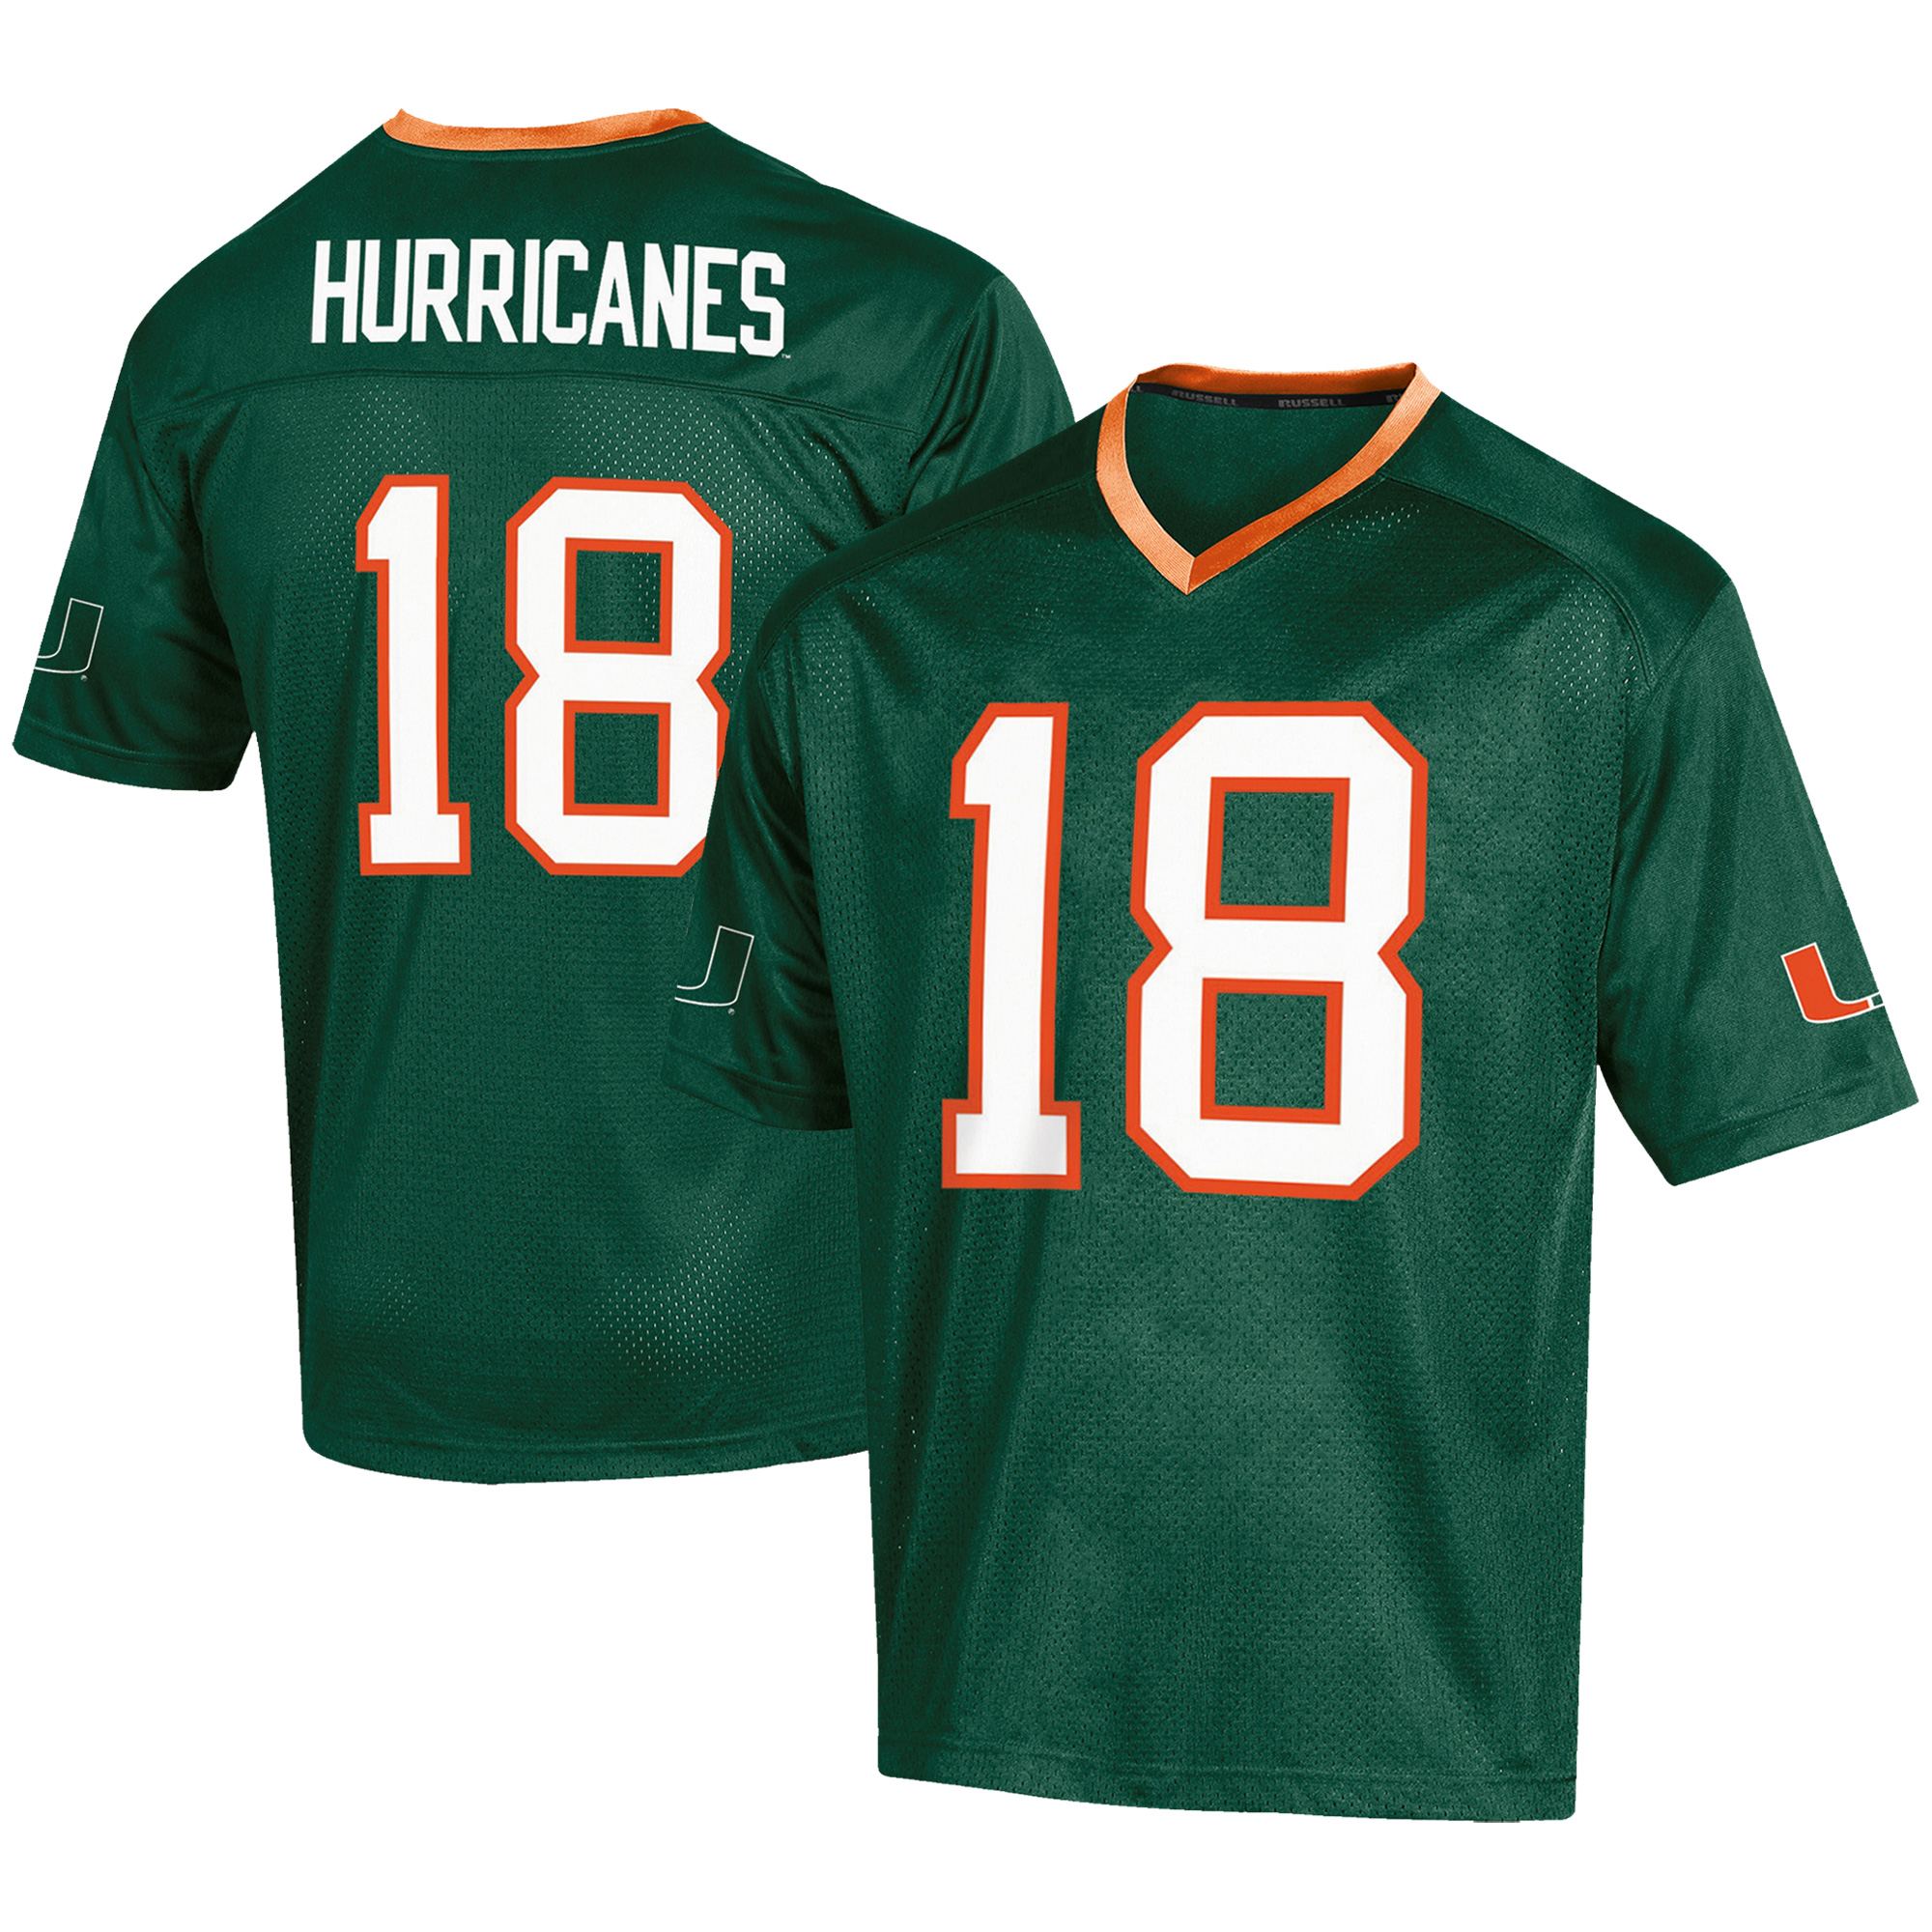 Men's Russell #18 Green Miami Hurricanes Fashion Football Jersey